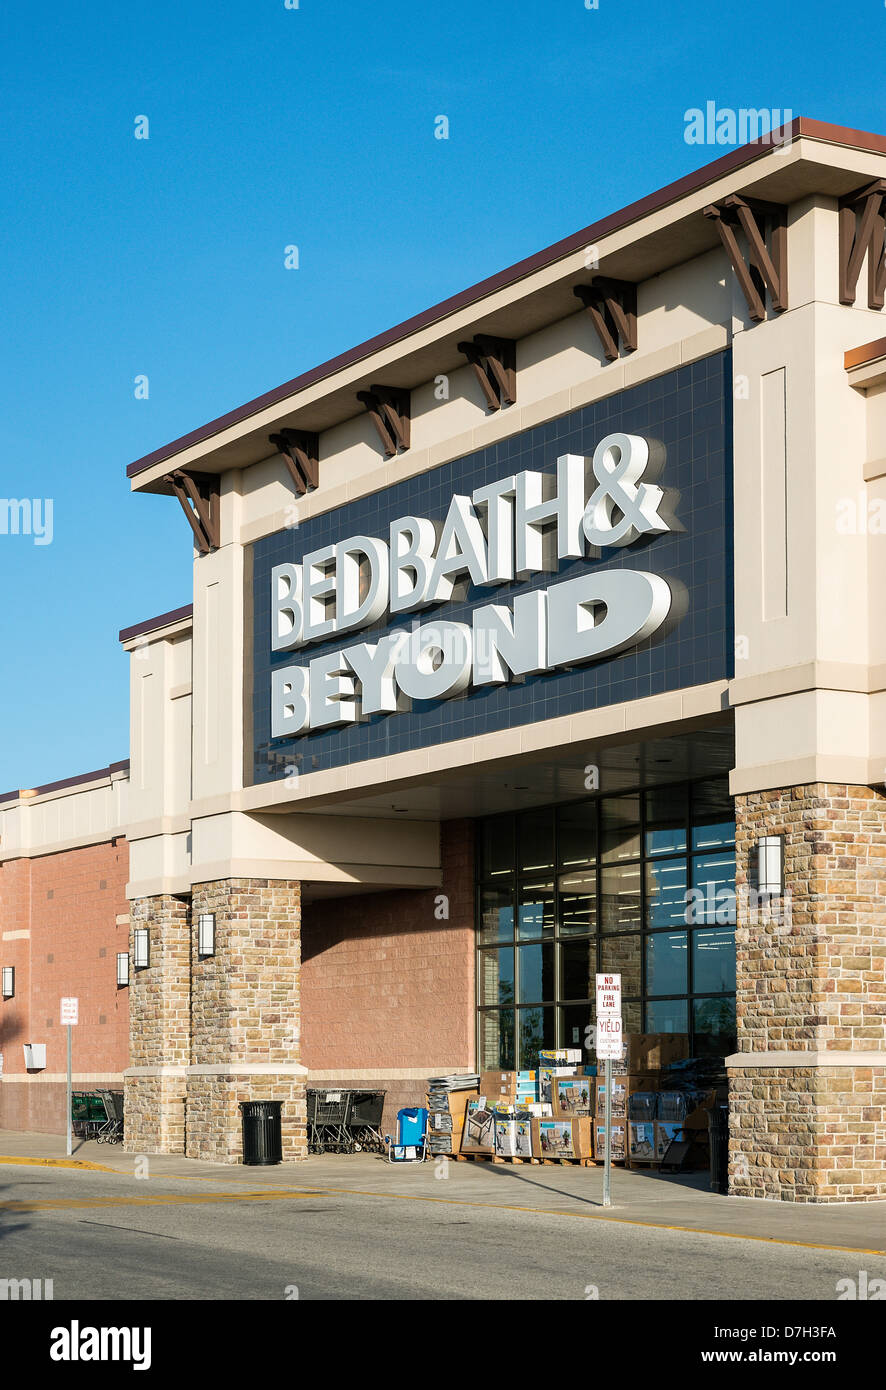 Bed, Bath and Beyond, magasin Photo Stock